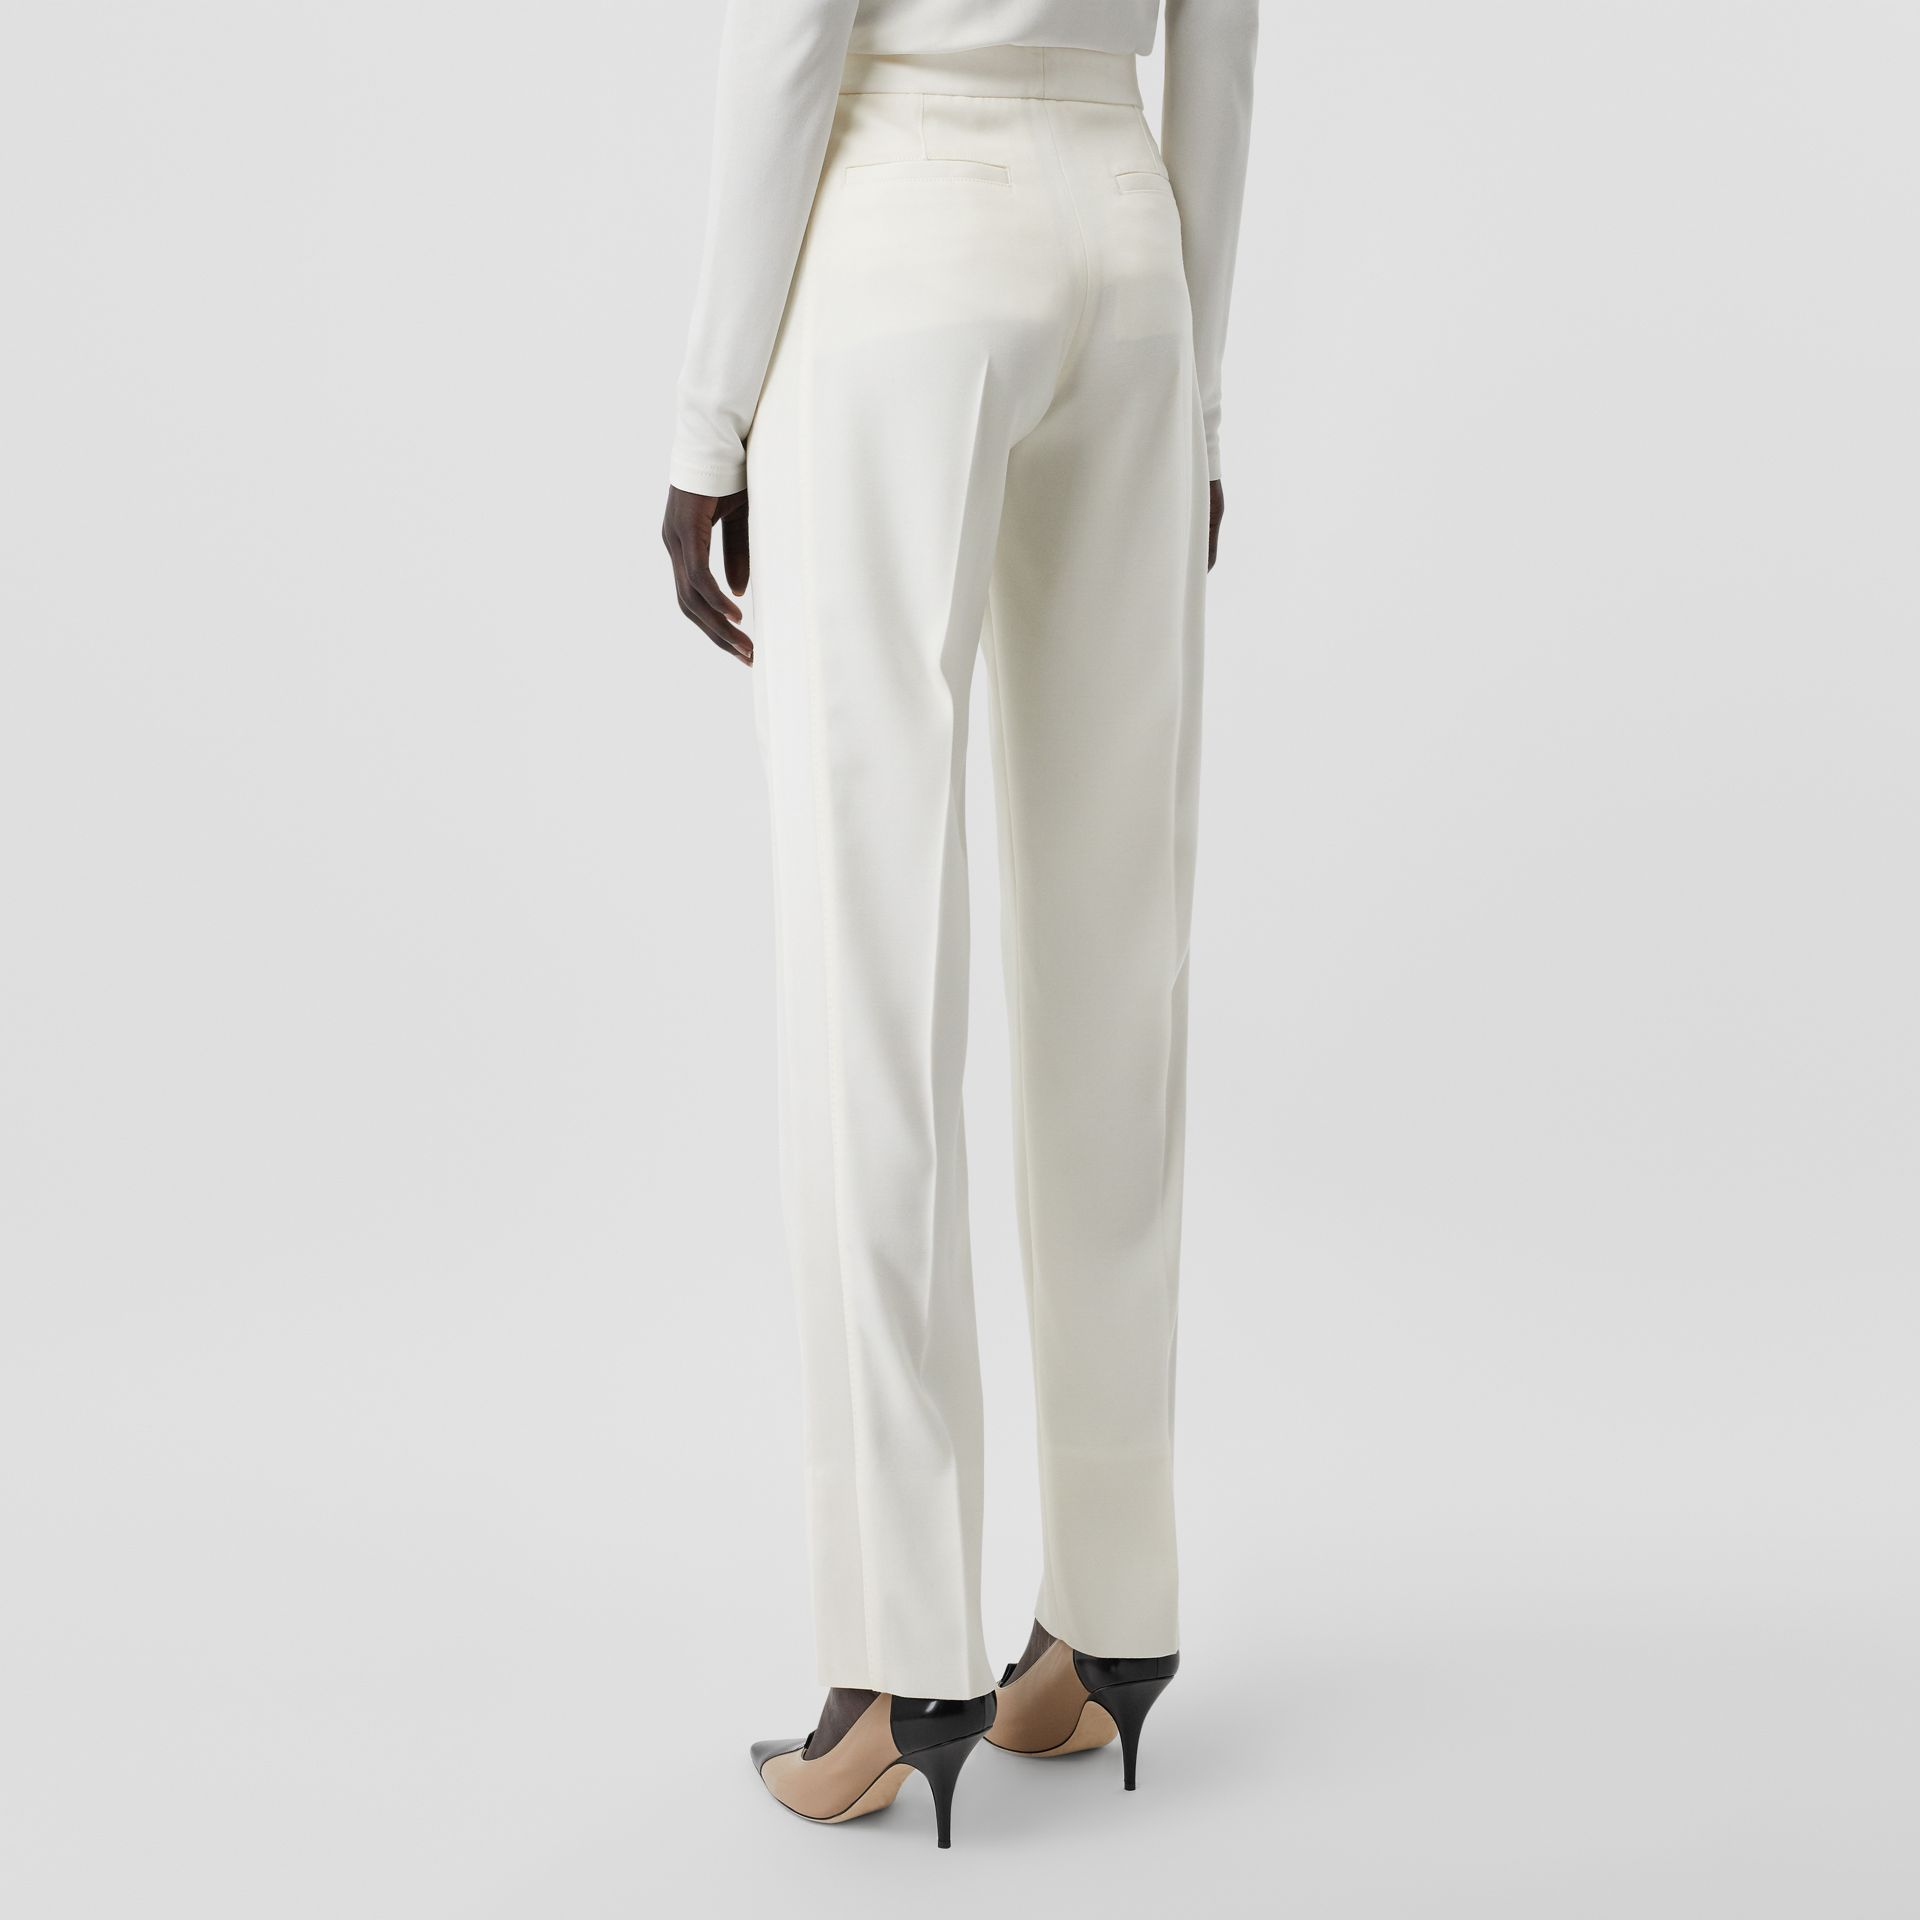 Satin Stripe Detail Wool Tailored Trousers in Natural White - Women | Burberry Singapore - gallery image 2